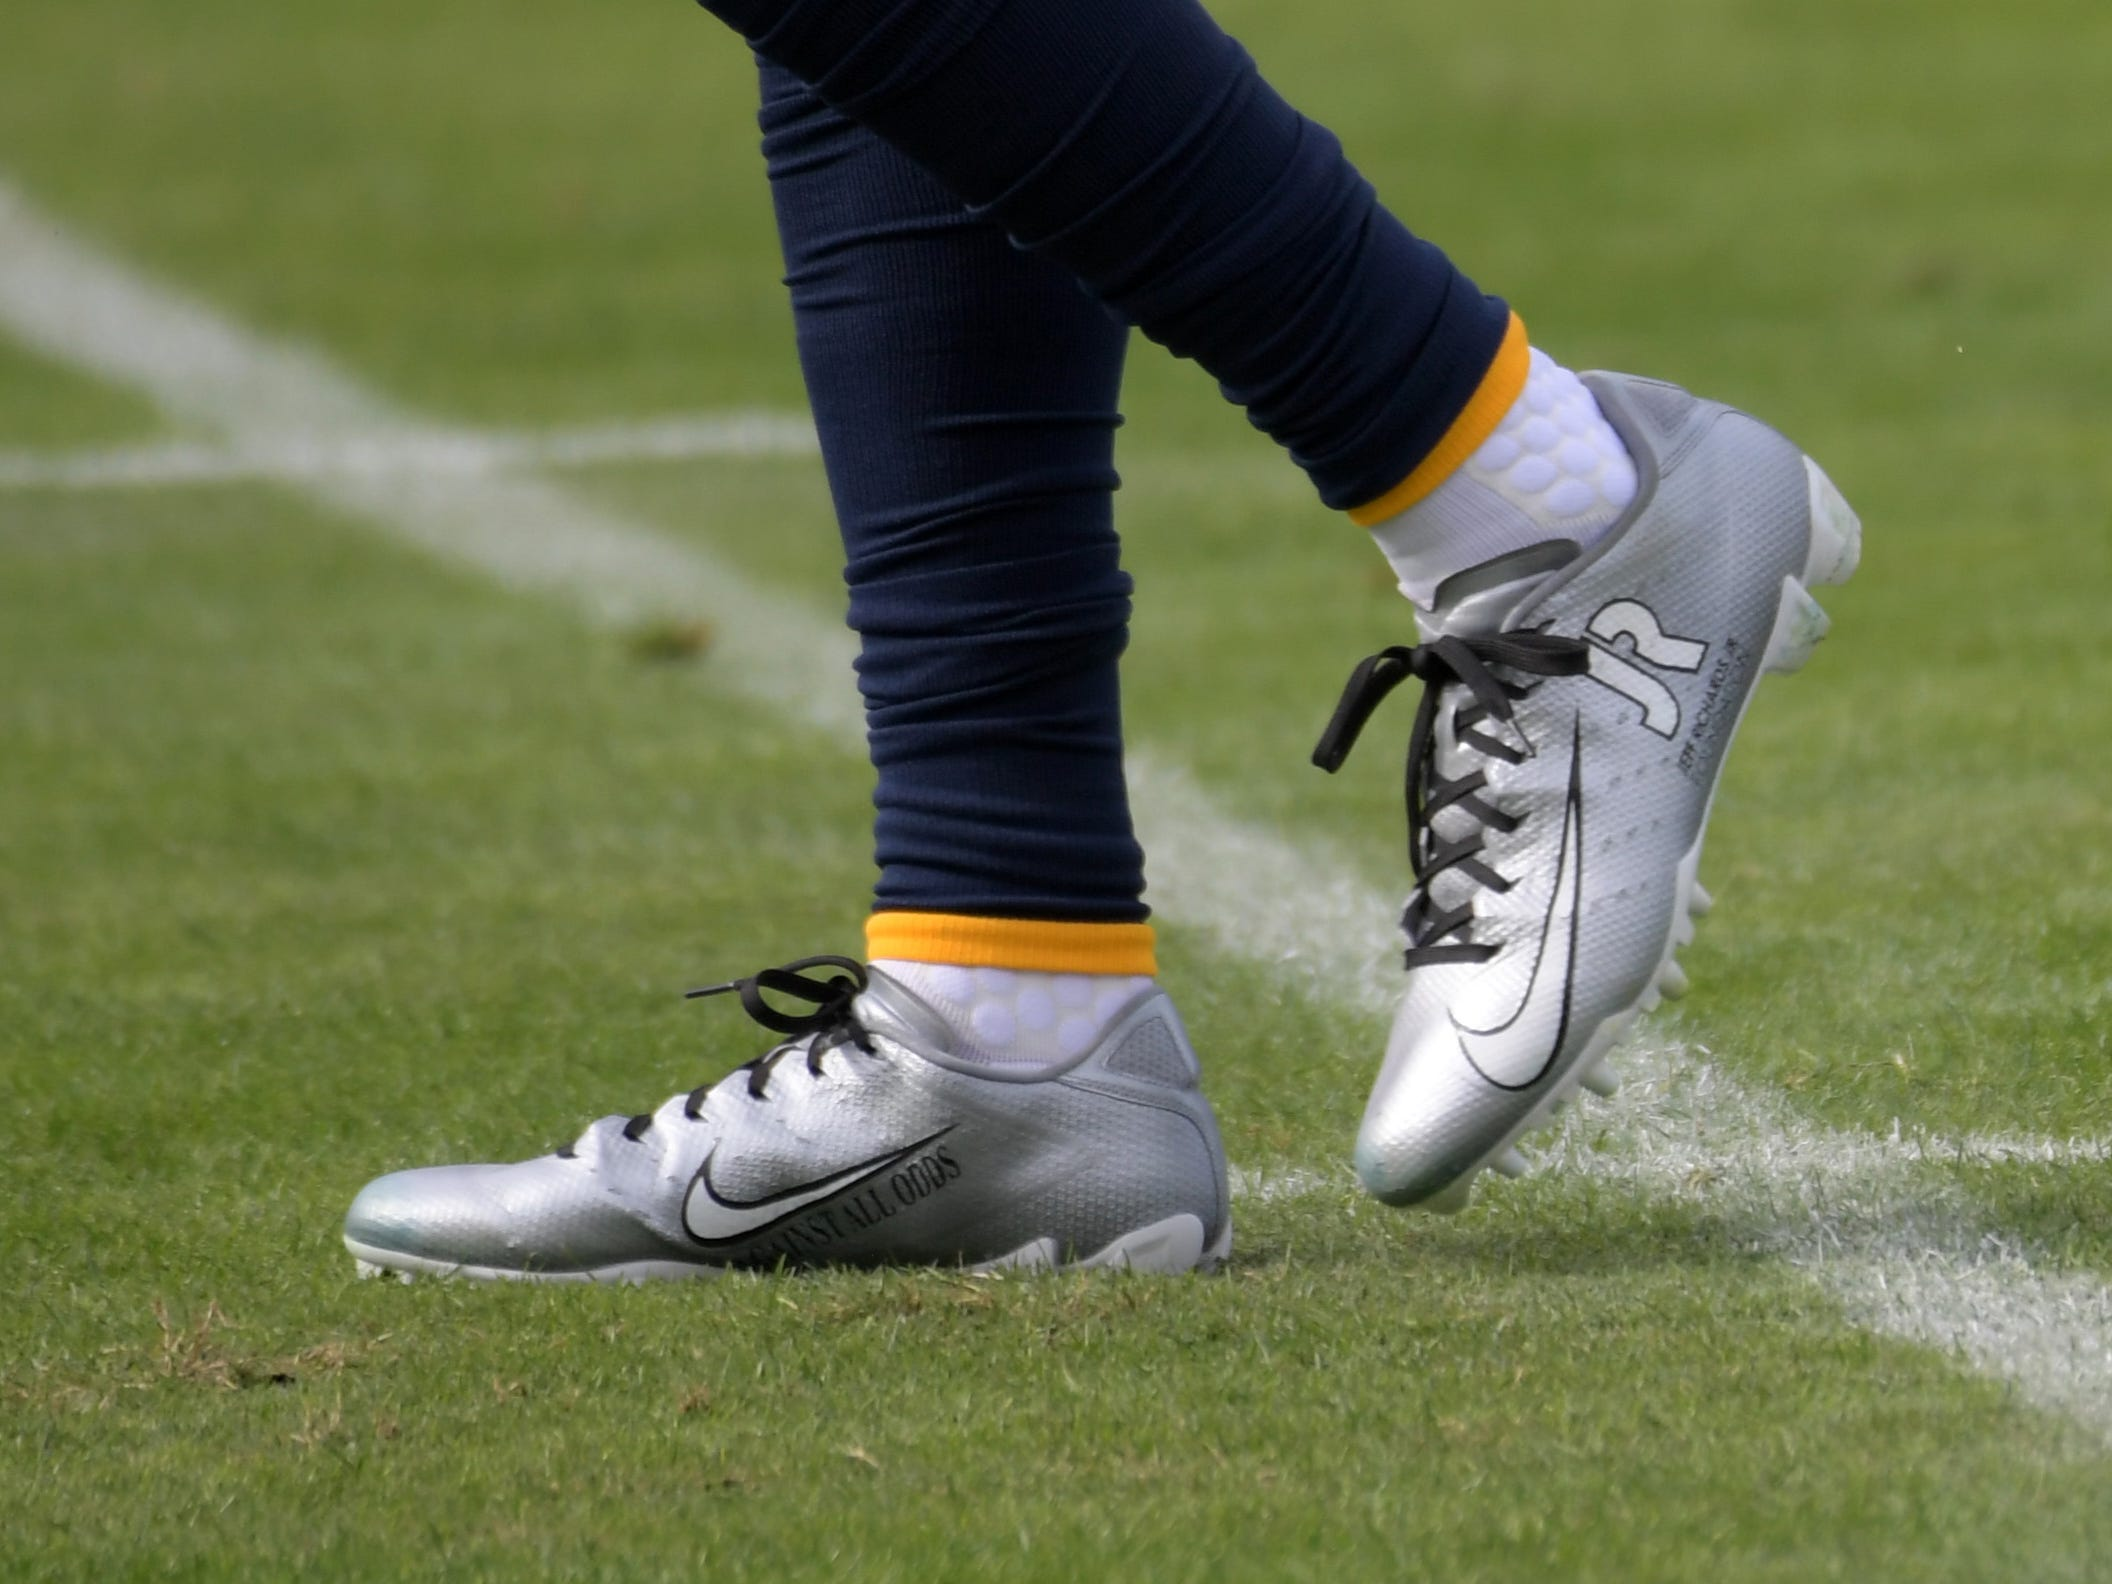 Los Angeles Chargers defensive back Jeff Richards wears personalized Nike cleats as part of the My Cause My Cleats campaign during the game against the Cincinnati Bengals at StubHub Center.